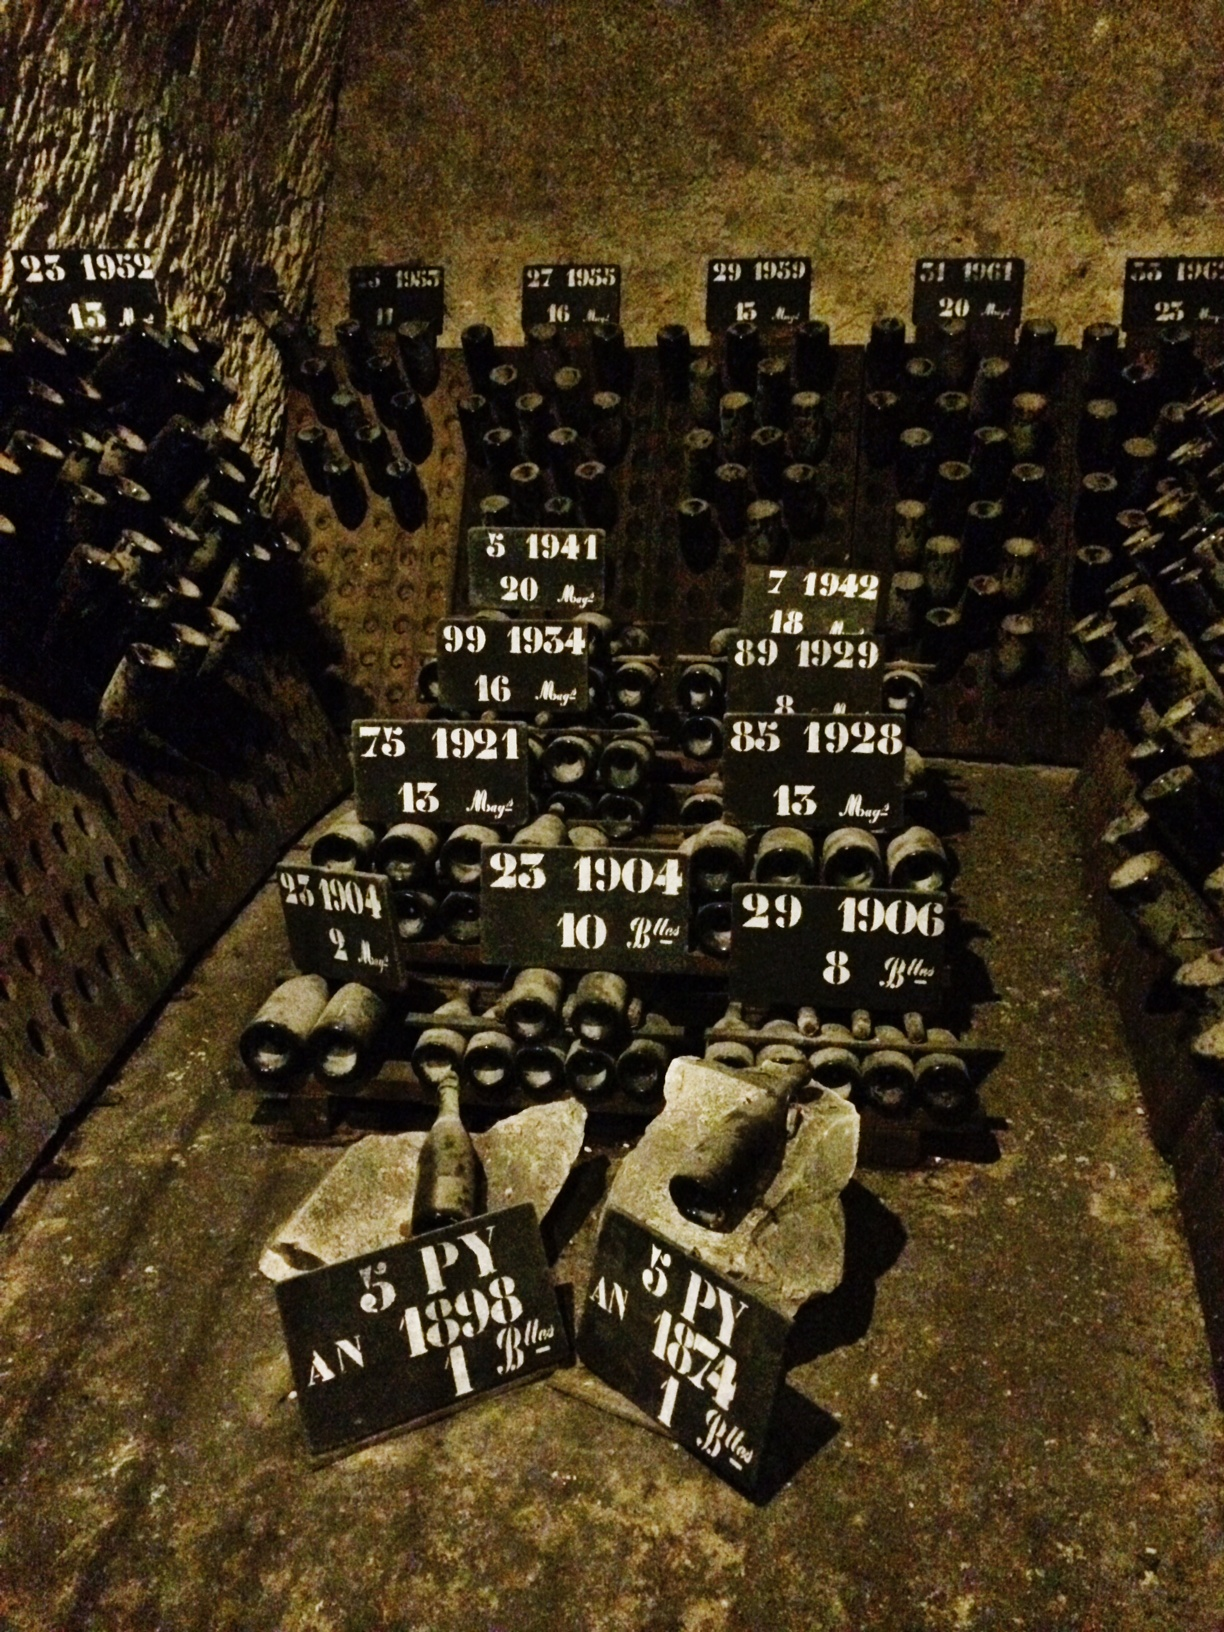 Vintage champagne dating back to 1874